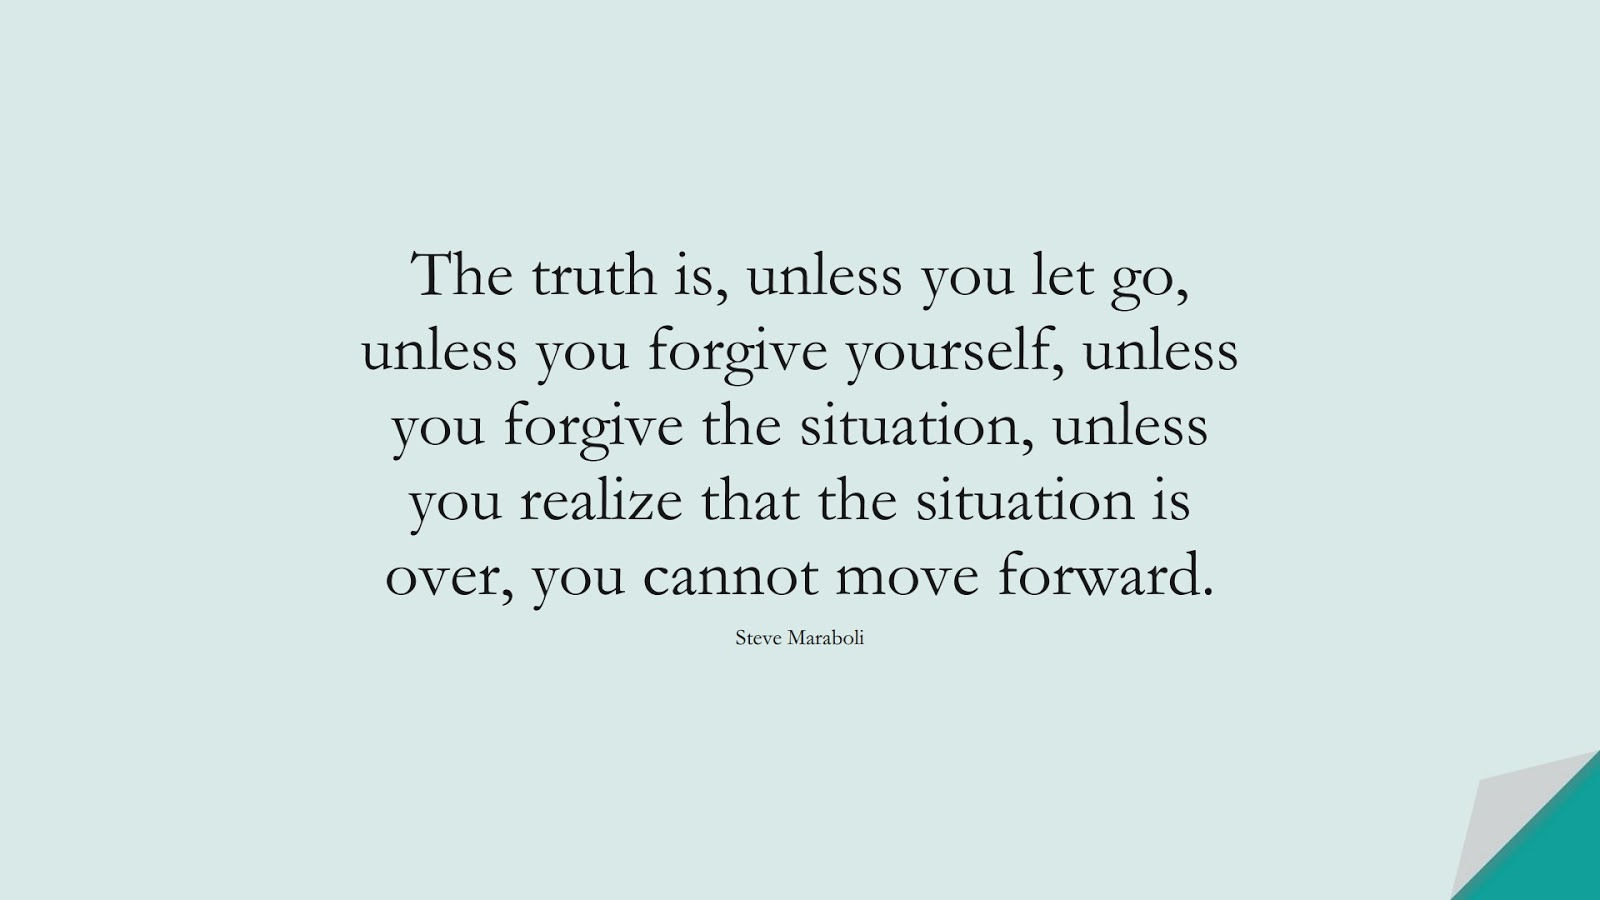 The truth is, unless you let go, unless you forgive yourself, unless you forgive the situation, unless you realize that the situation is over, you cannot move forward. (Steve Maraboli);  #LoveQuotes